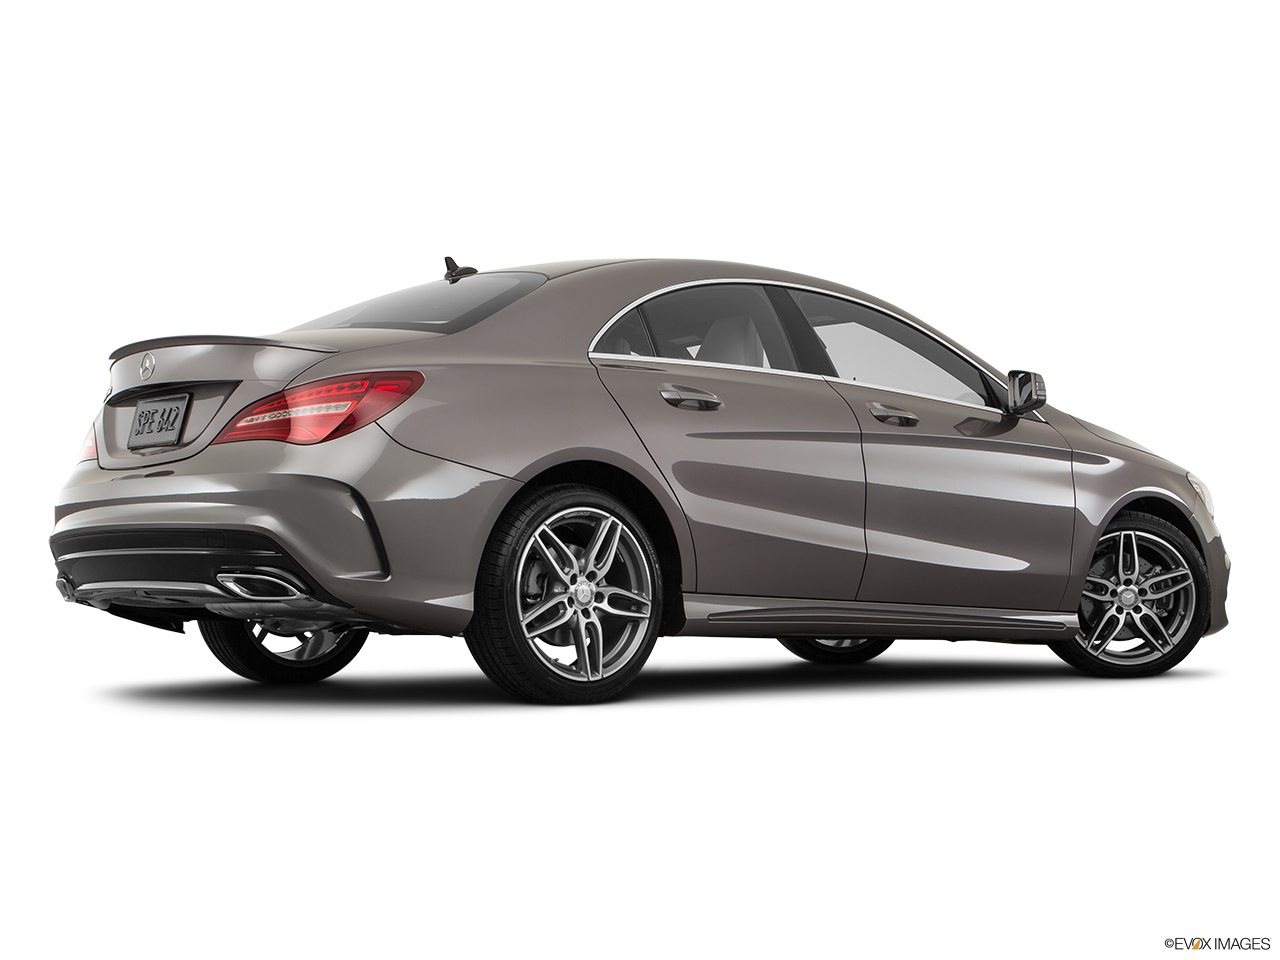 Car pictures list for mercedes benz cla class 2018 cla 250 for Mercedes benz classes list